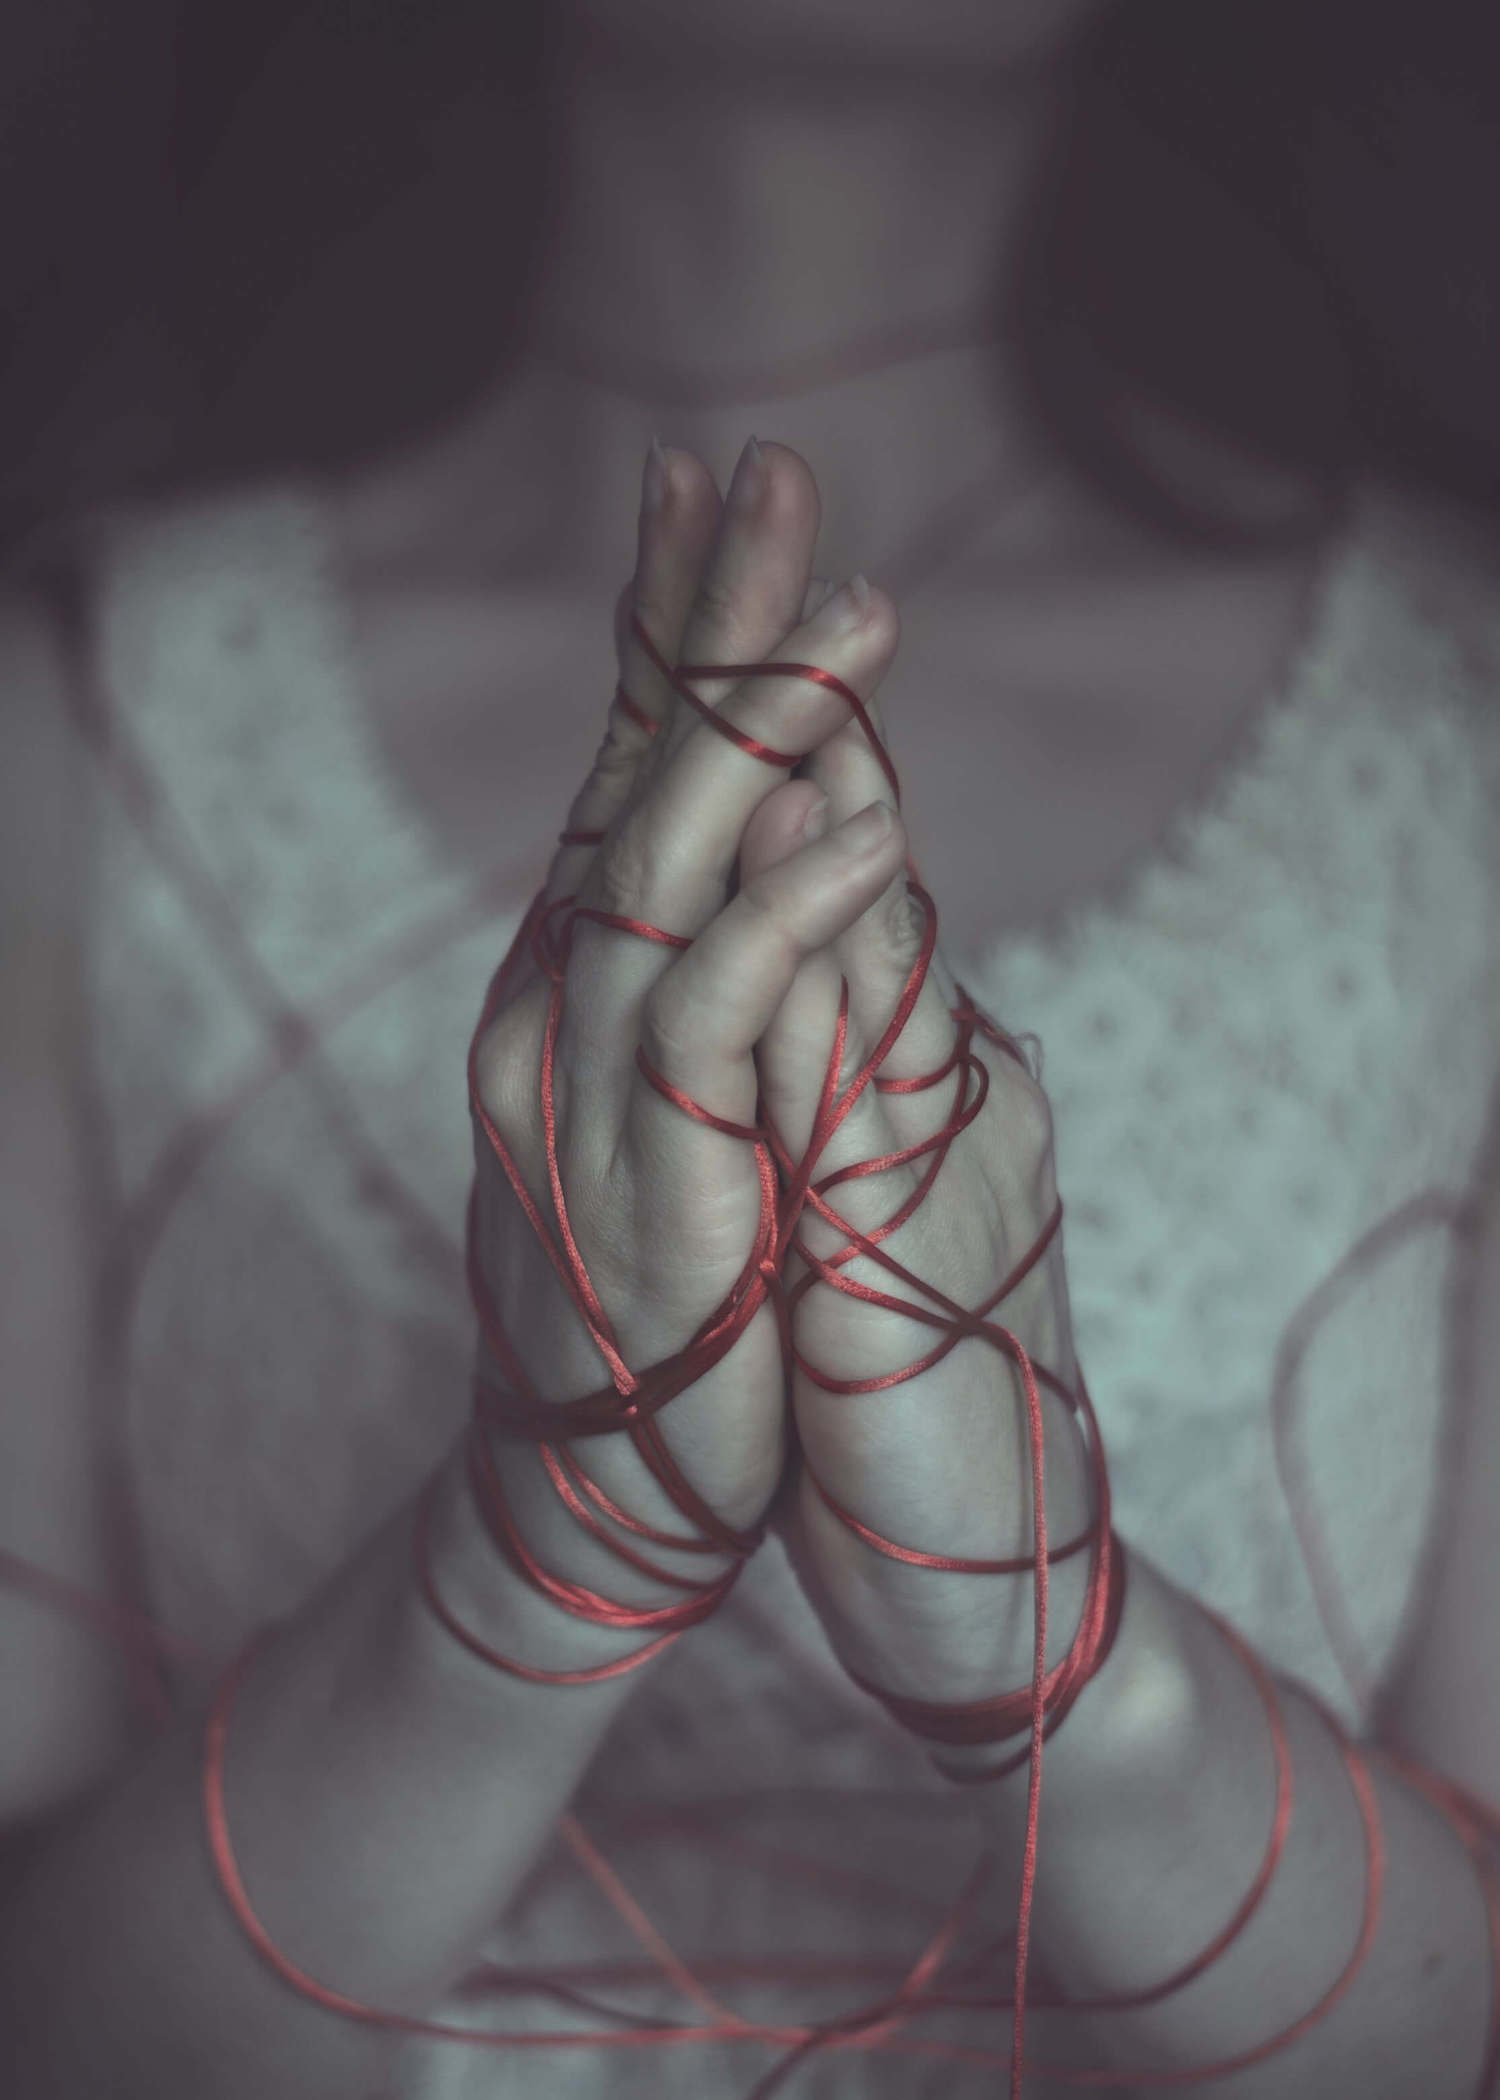 3. Asphyxia ©MARIAMNE - Please click on image to enlarge in lightbox.